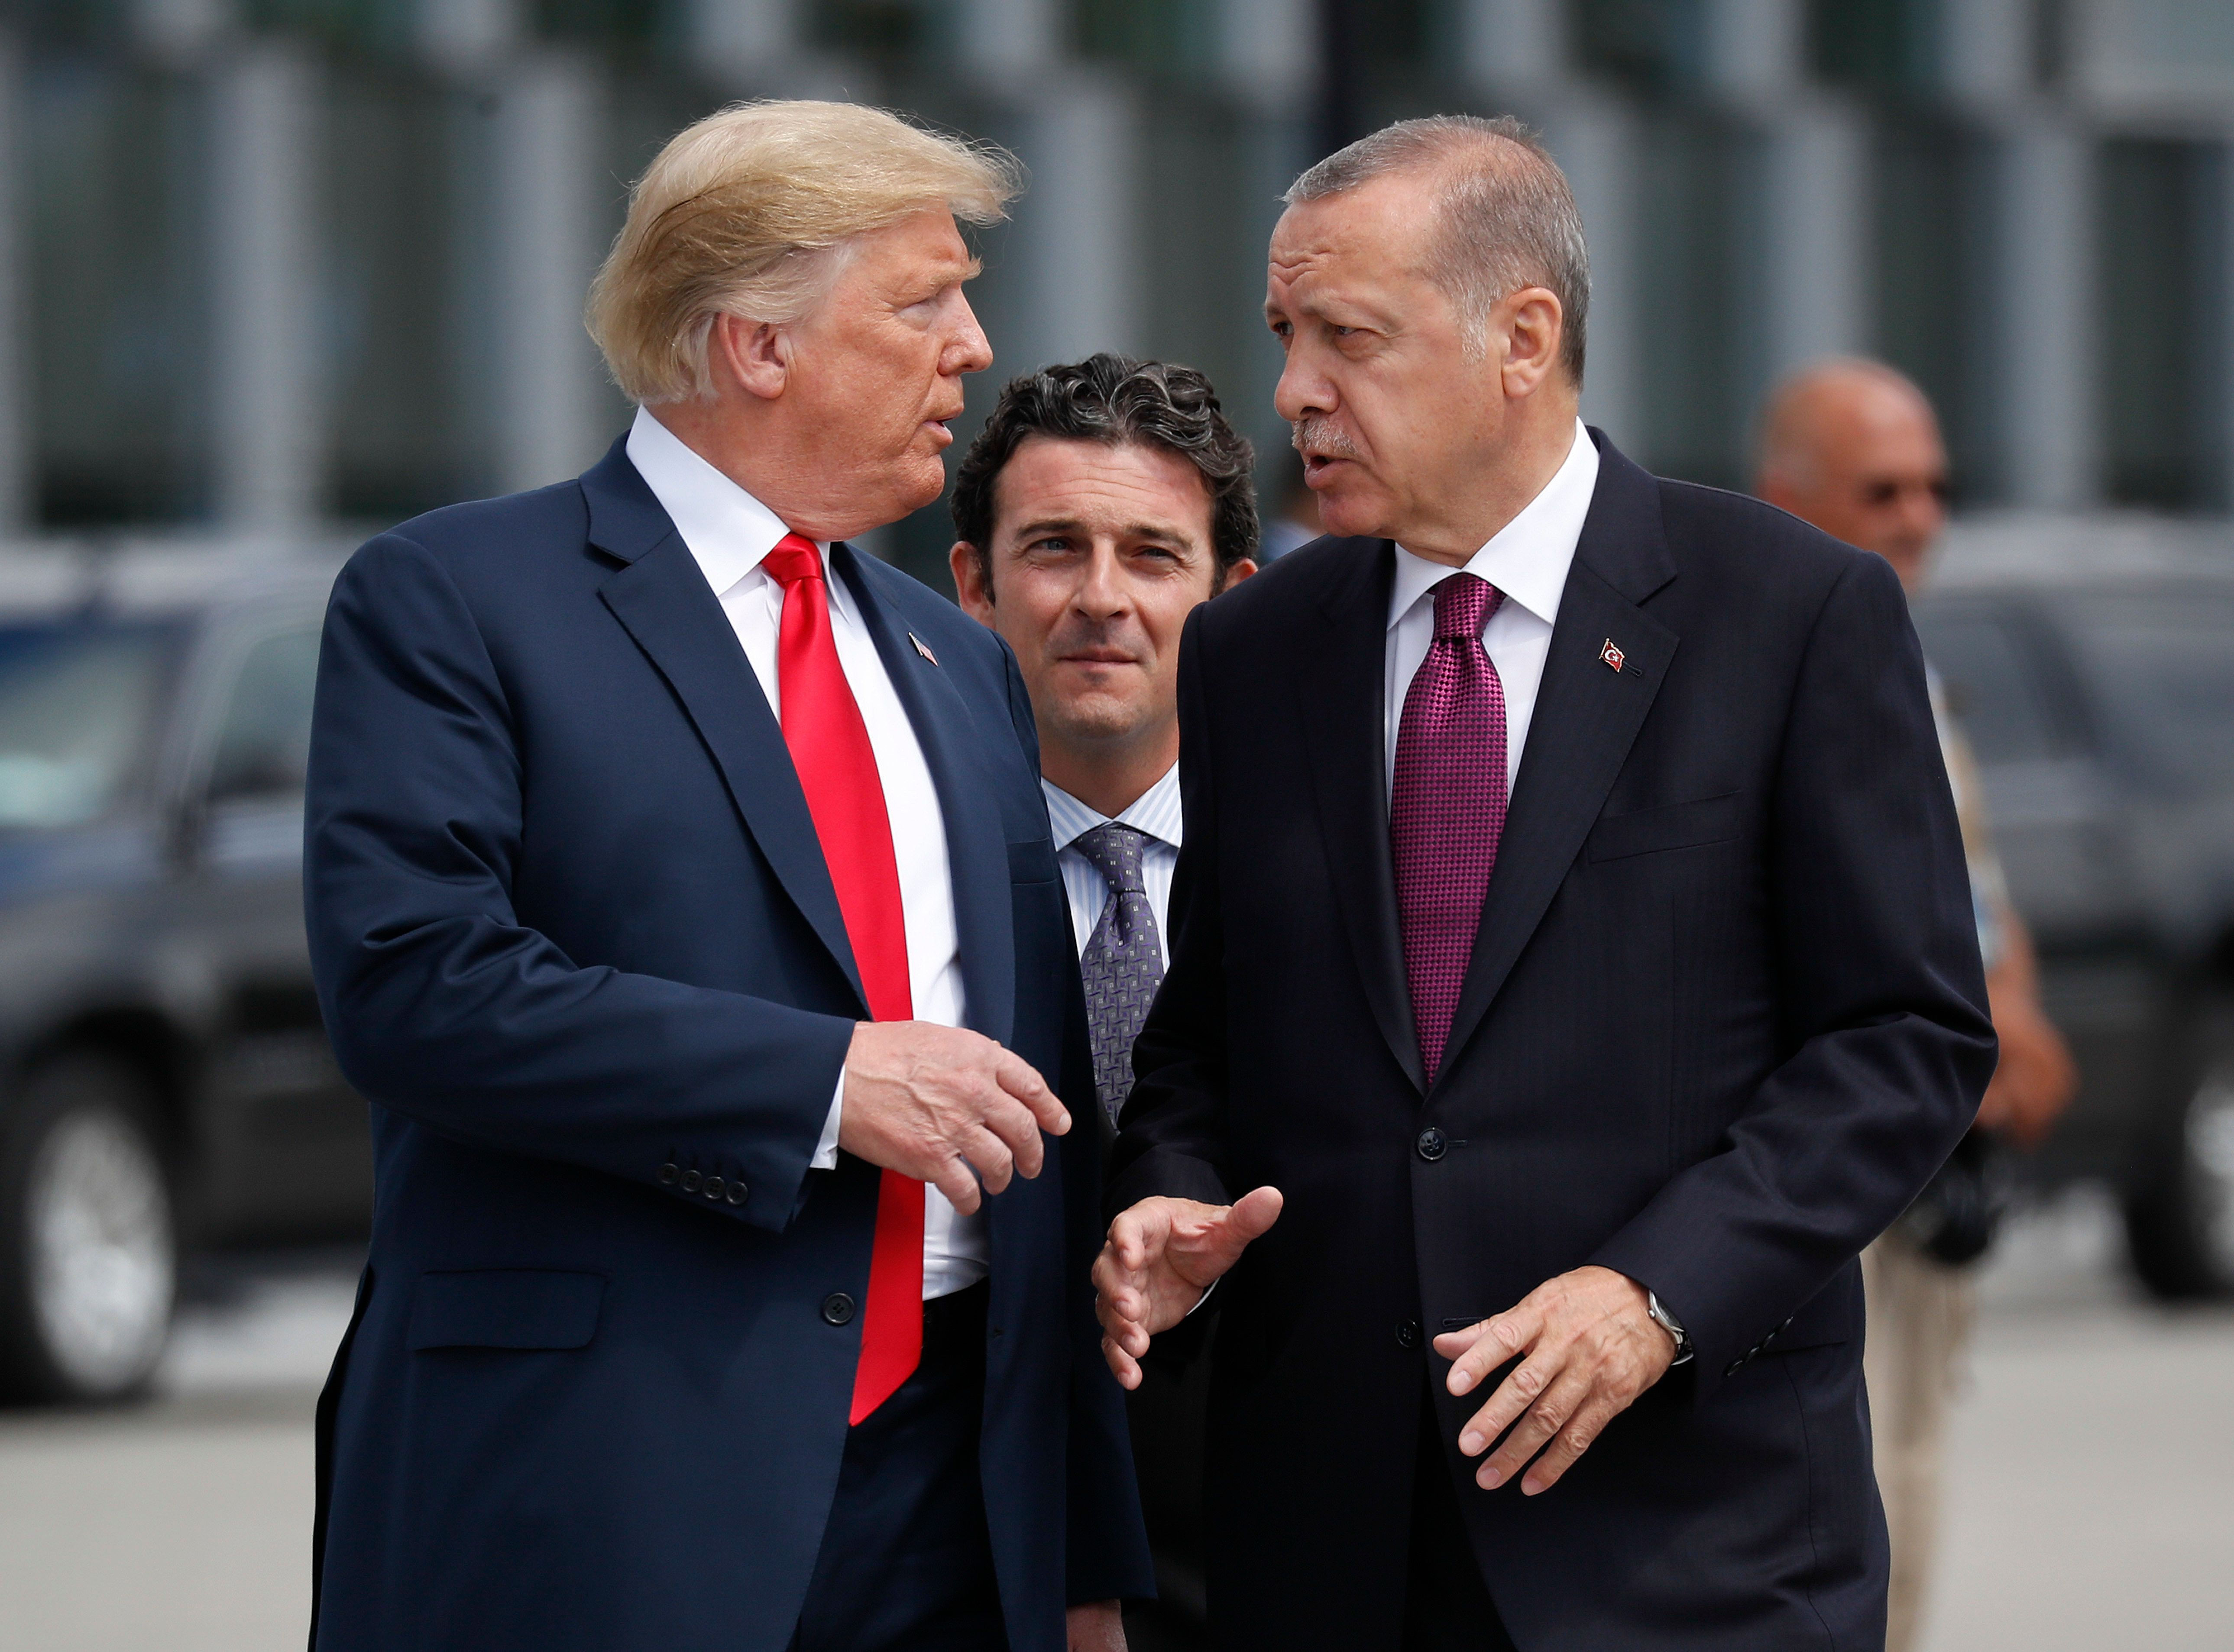 President Donald Trump, left, talks with Turkey's President Recep Tayyip Erdogan, right, as they arrive together for a family photo at a summit of heads of state and government at NATO headquarters in Brussels on Wednesday, July 11, 2018. NATO leaders gather in Brussels for a two-day summit to discuss Russia, Iraq and their mission in Afghanistan. (AP Photo/Pablo Martinez Monsivais)